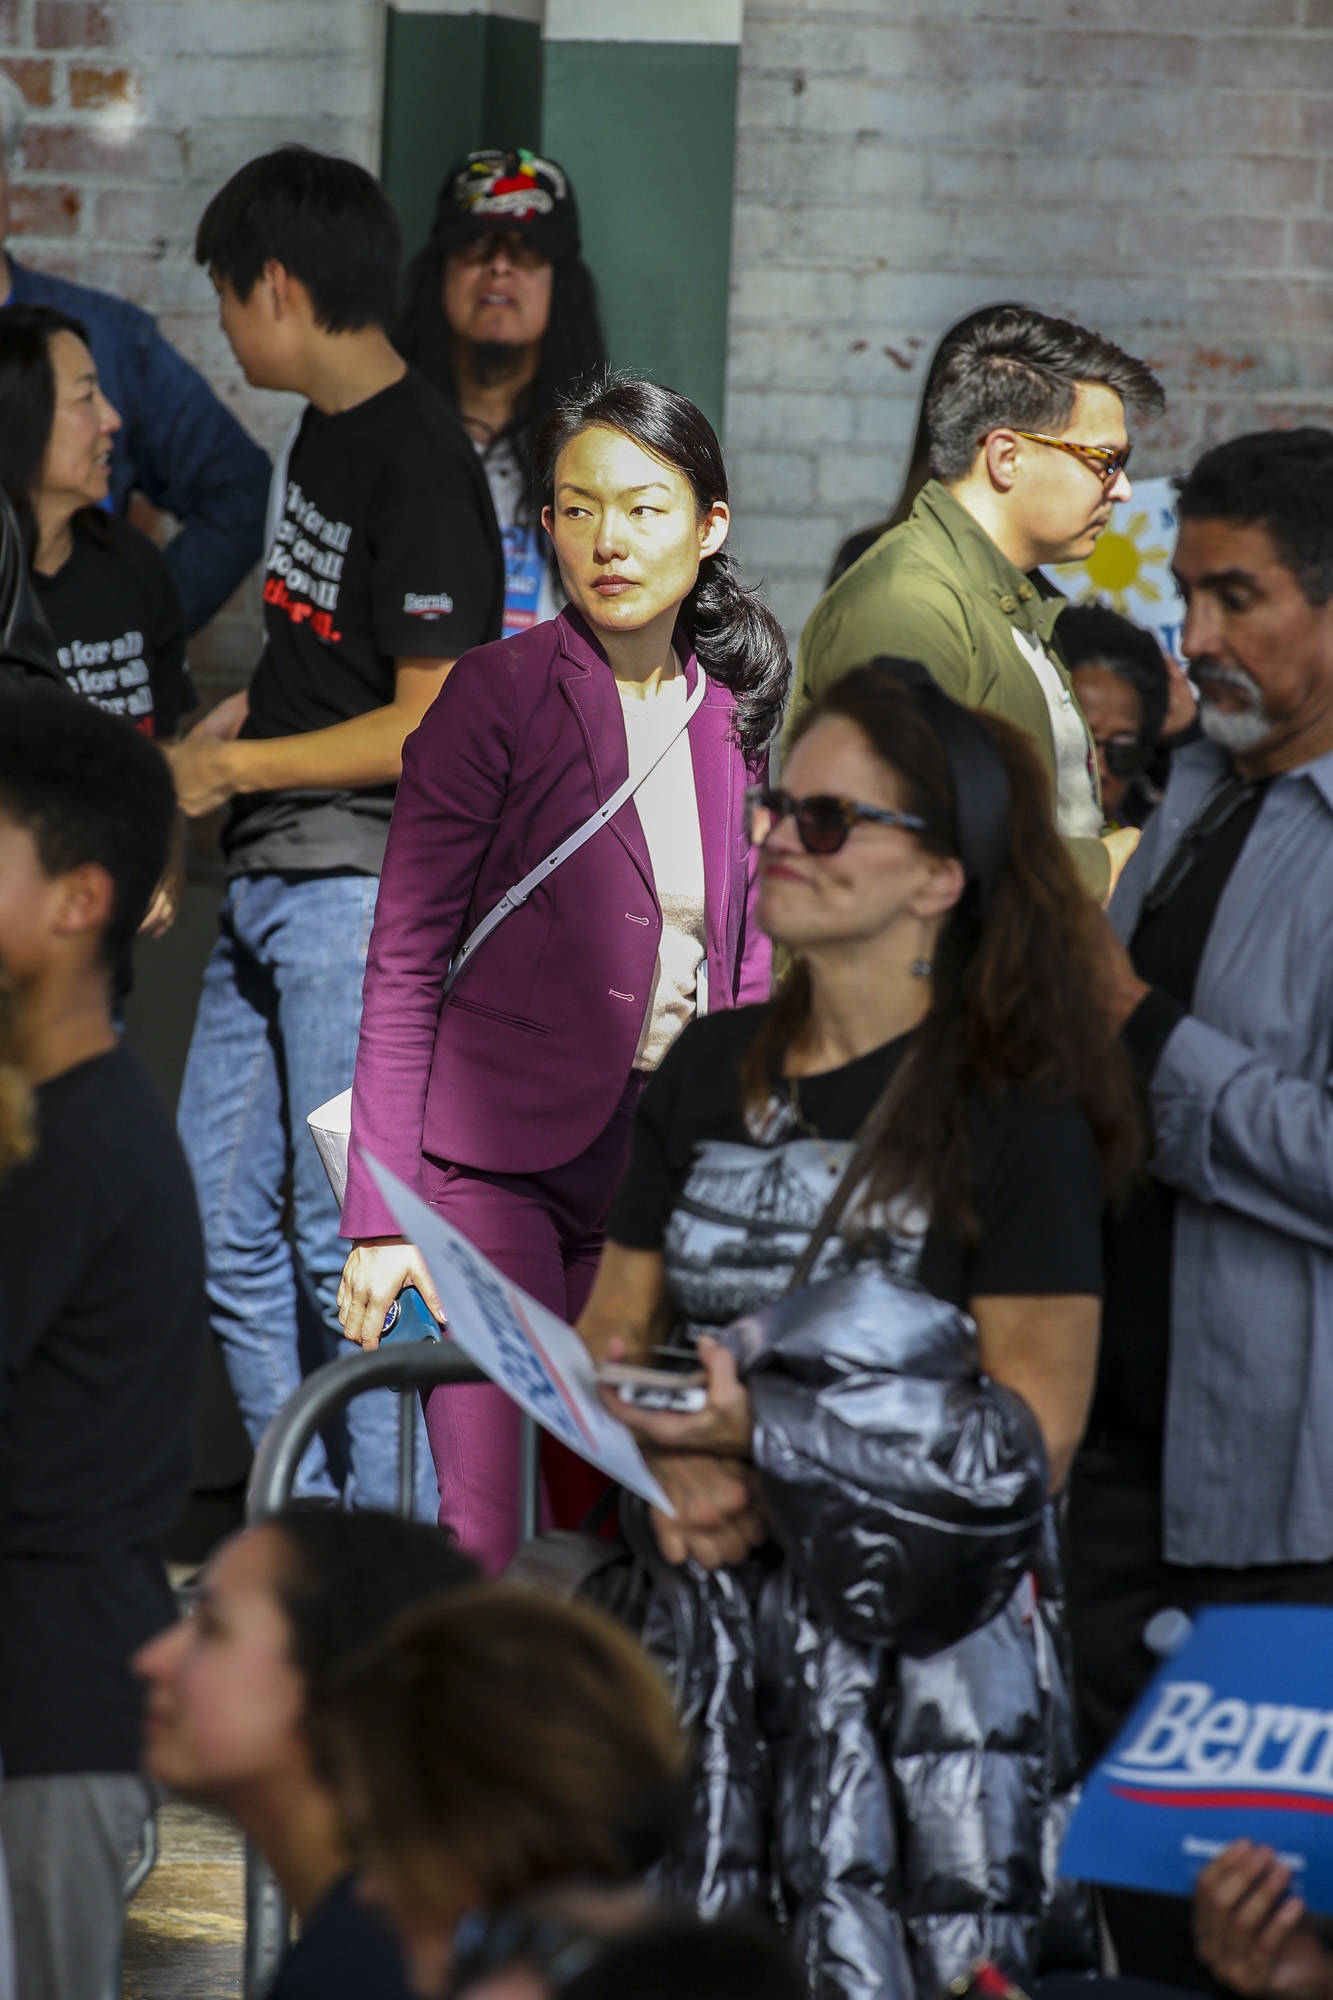 Former San Francisco Supervisor Jane Kim, who now holds a leadership role in the local Sanders campaign, was among those attending Monday's rally. (Chris Victorio/ Special to S.F. Examiner)